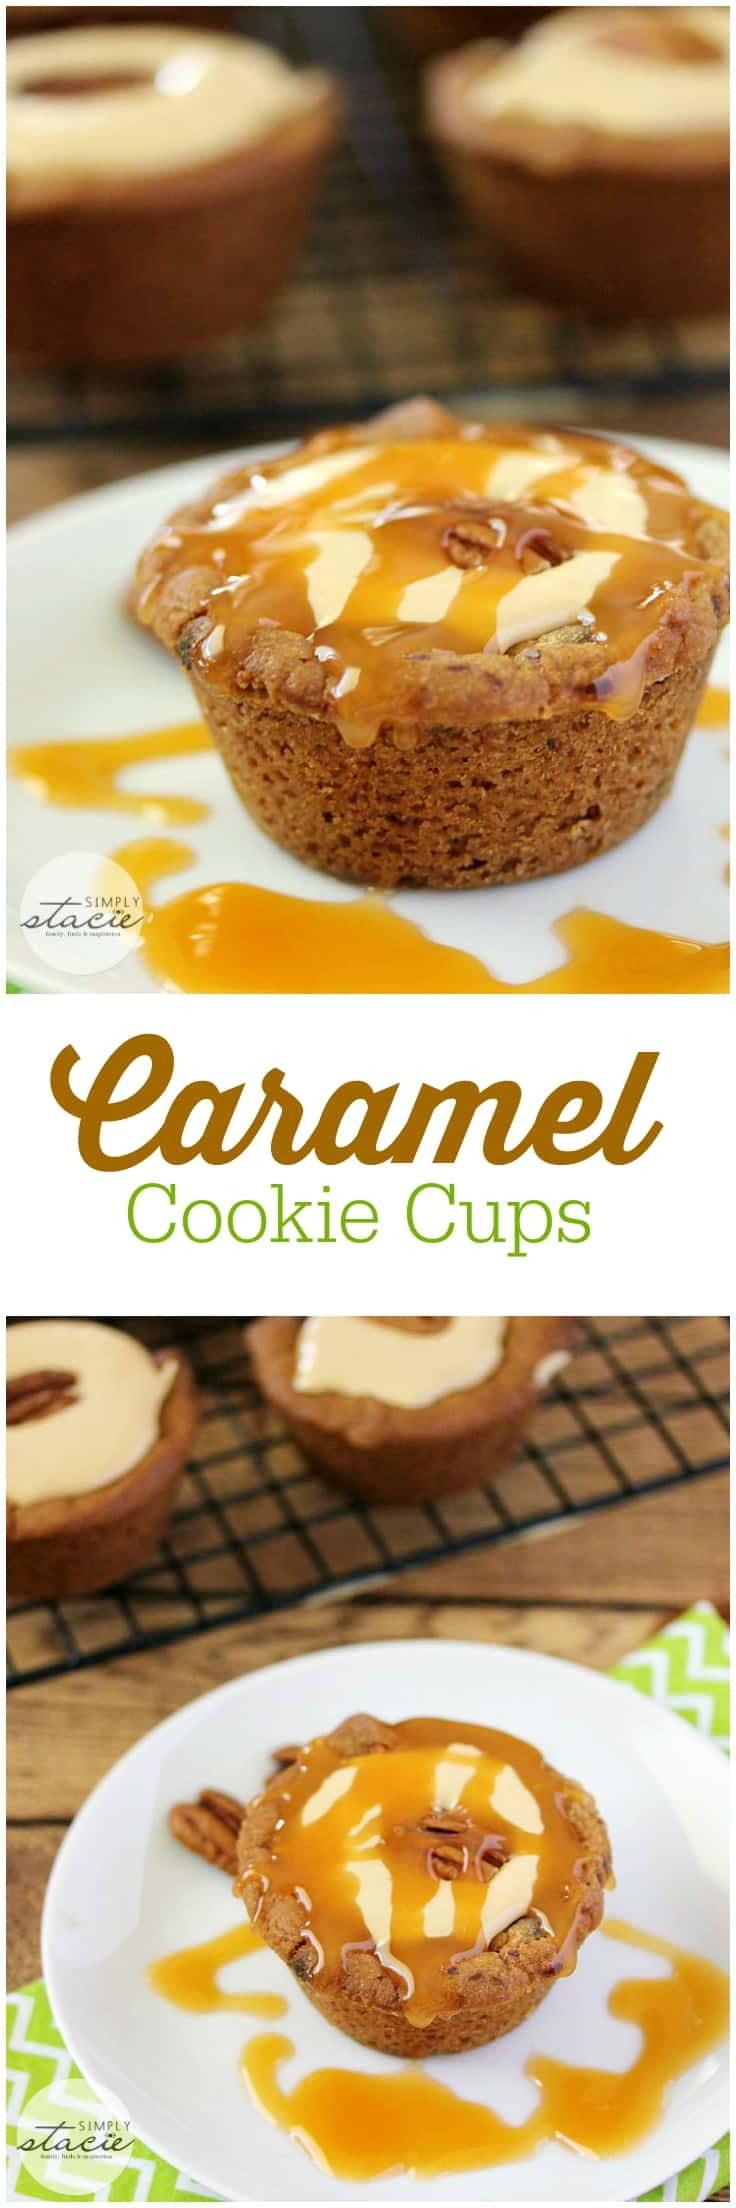 Caramel Cookie Cups - Sinfully sweet with a creamy smooth caramel filling and surrounded by a freshly baked chocolate chip cookie cup.